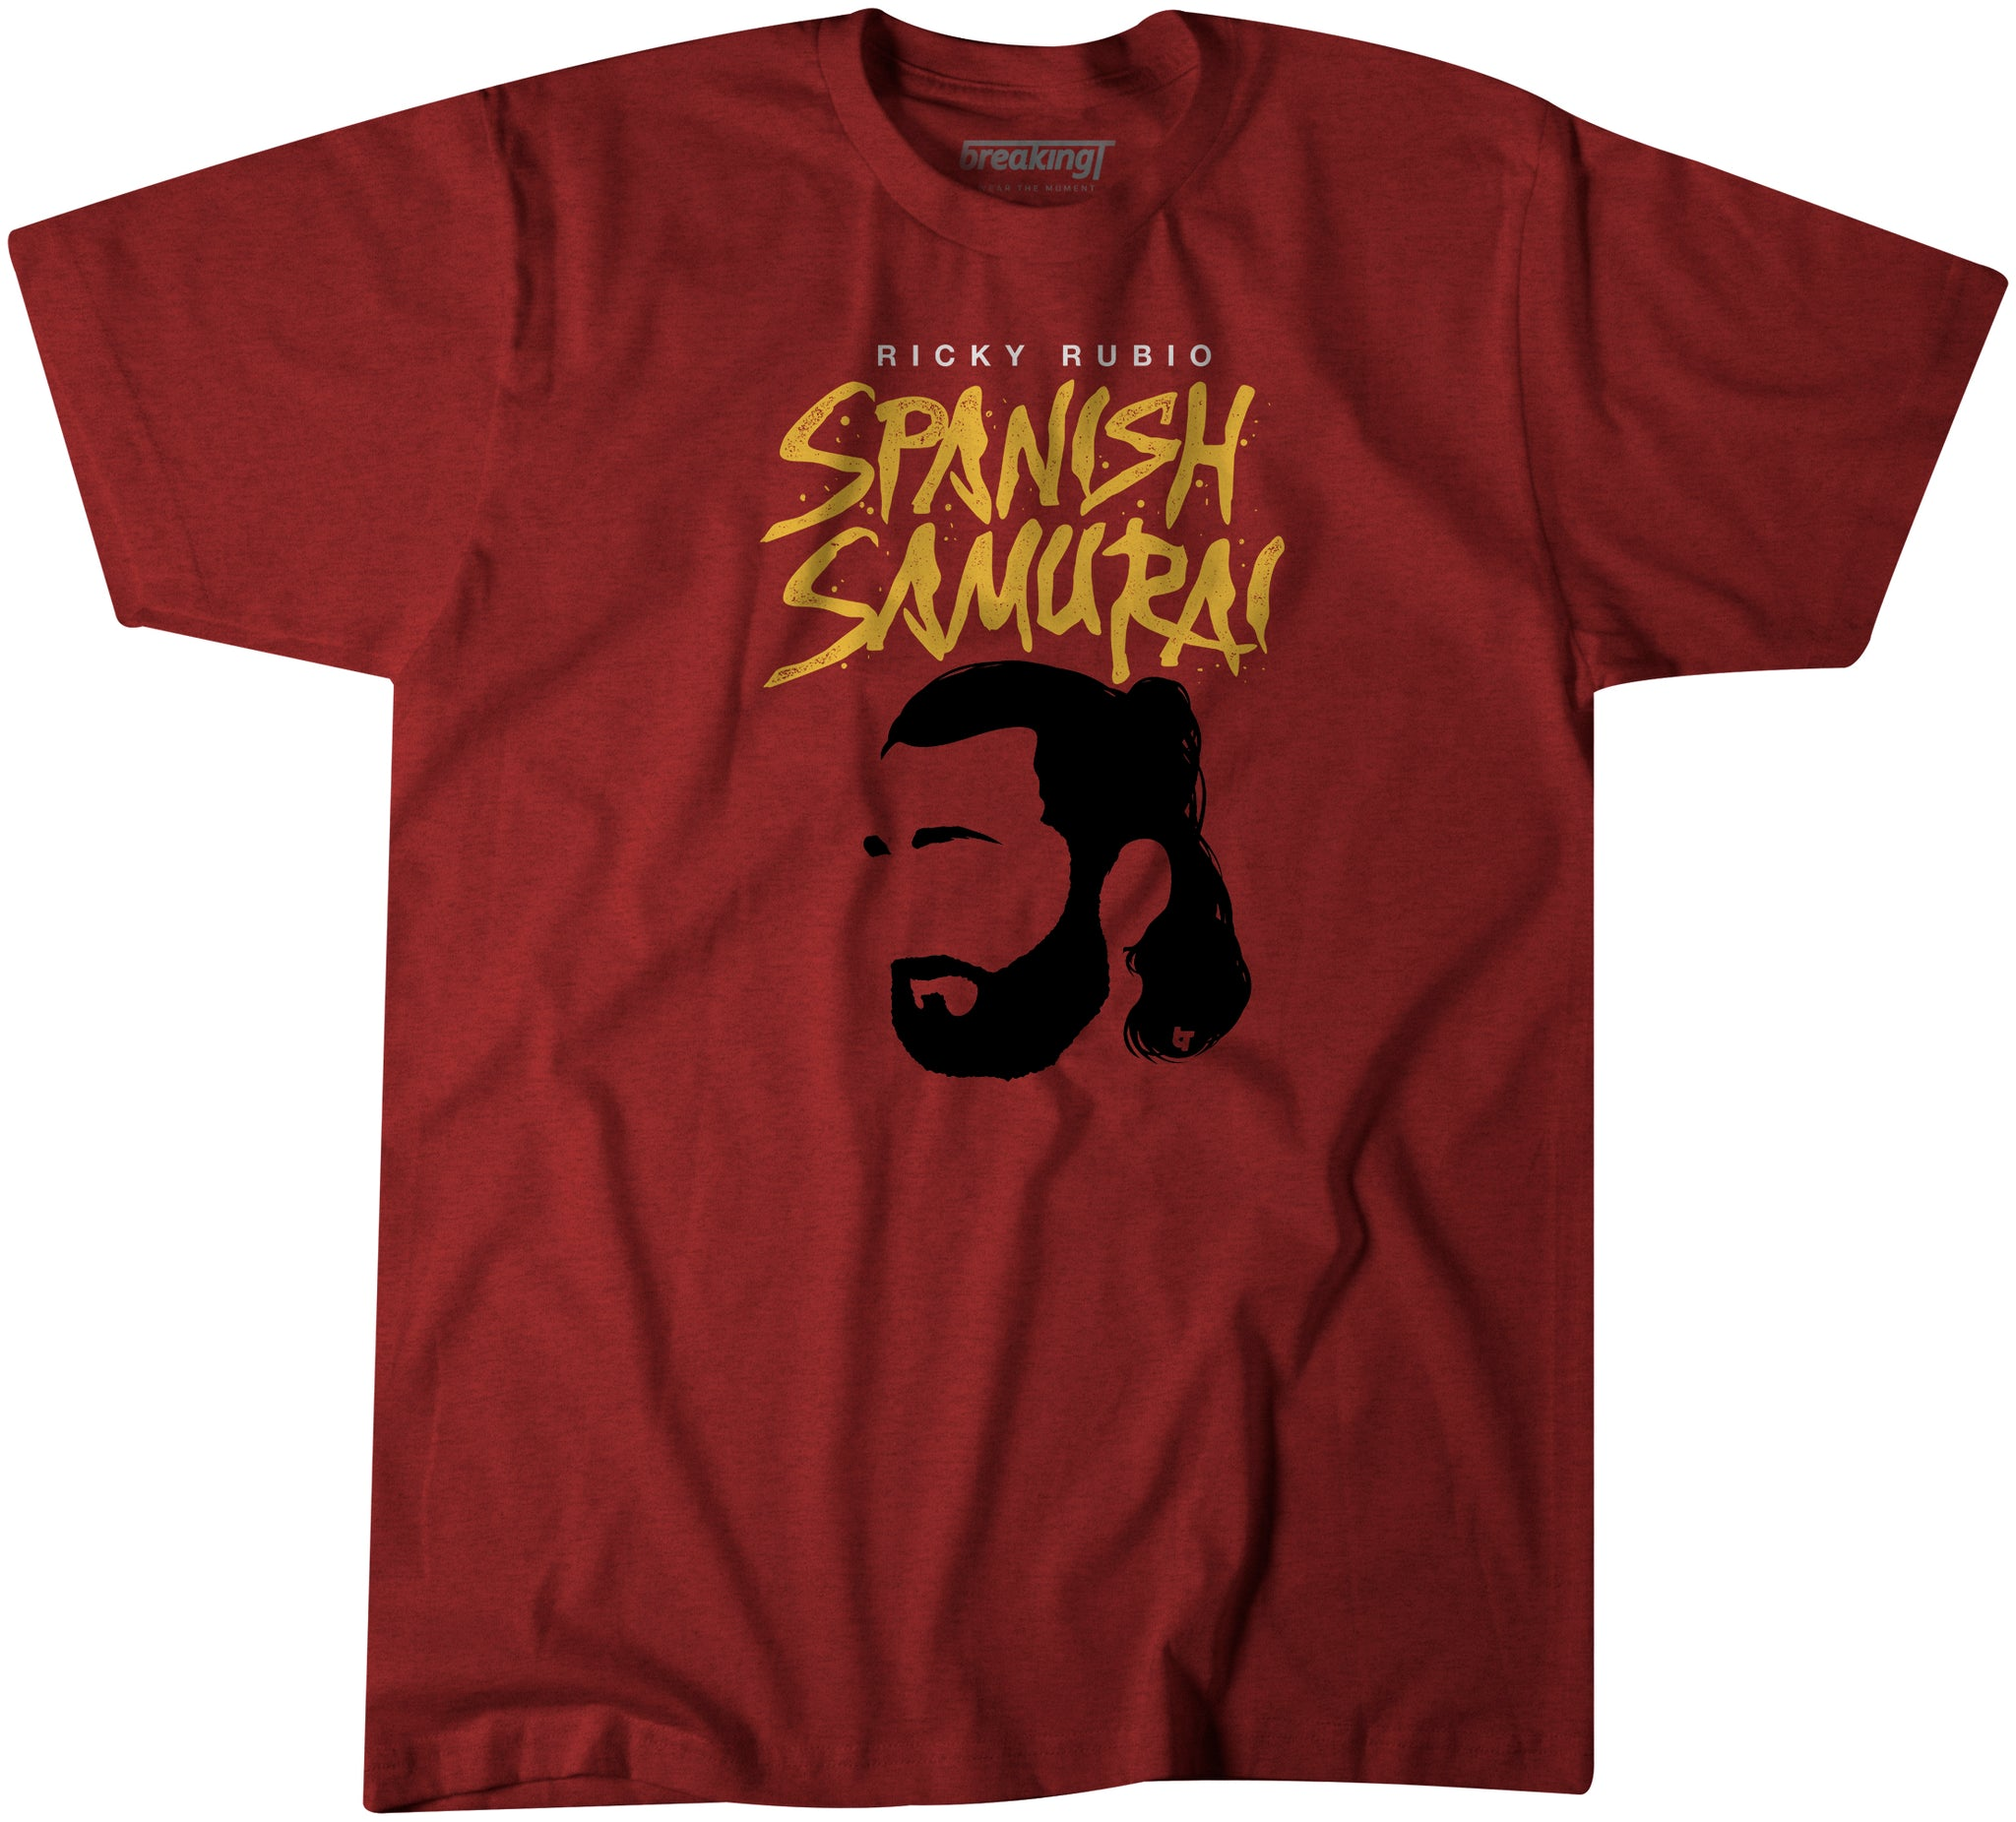 c4802285 Ricky Rubio Shirt, Spanish Samurai - BreakingT